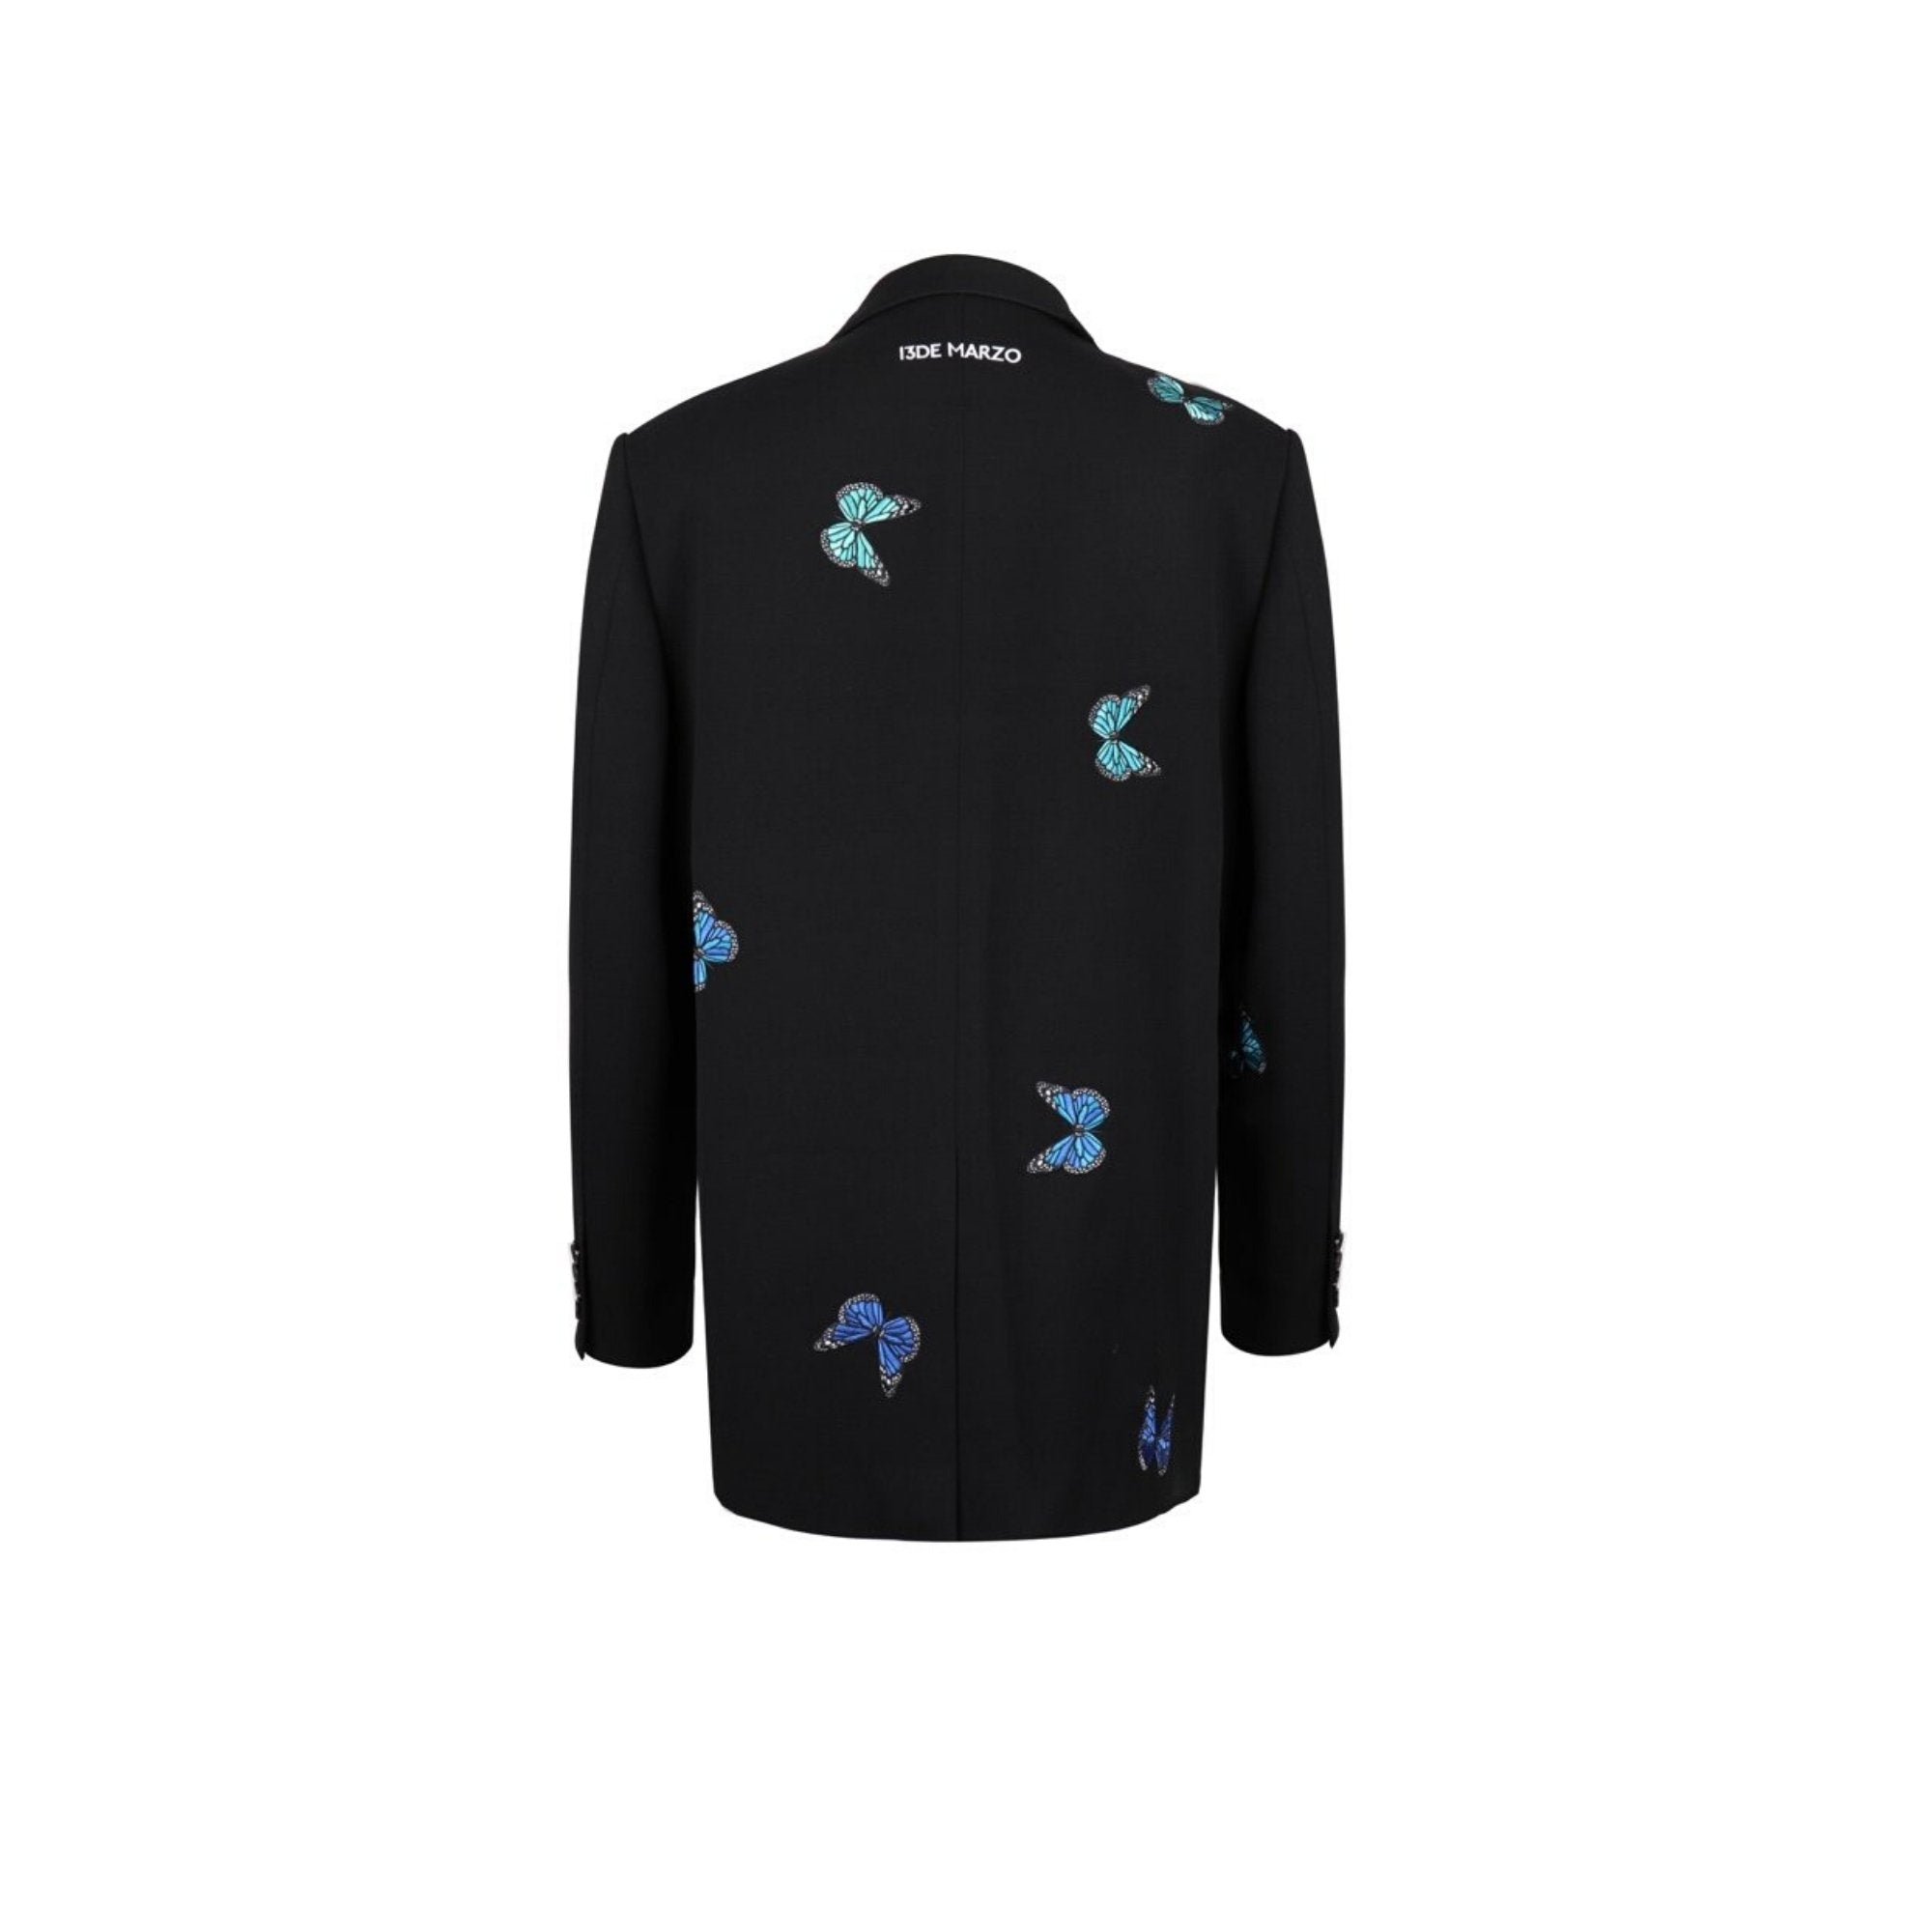 13 DE MARZO Butterfly Embroidered Suit | MADA IN CHINA